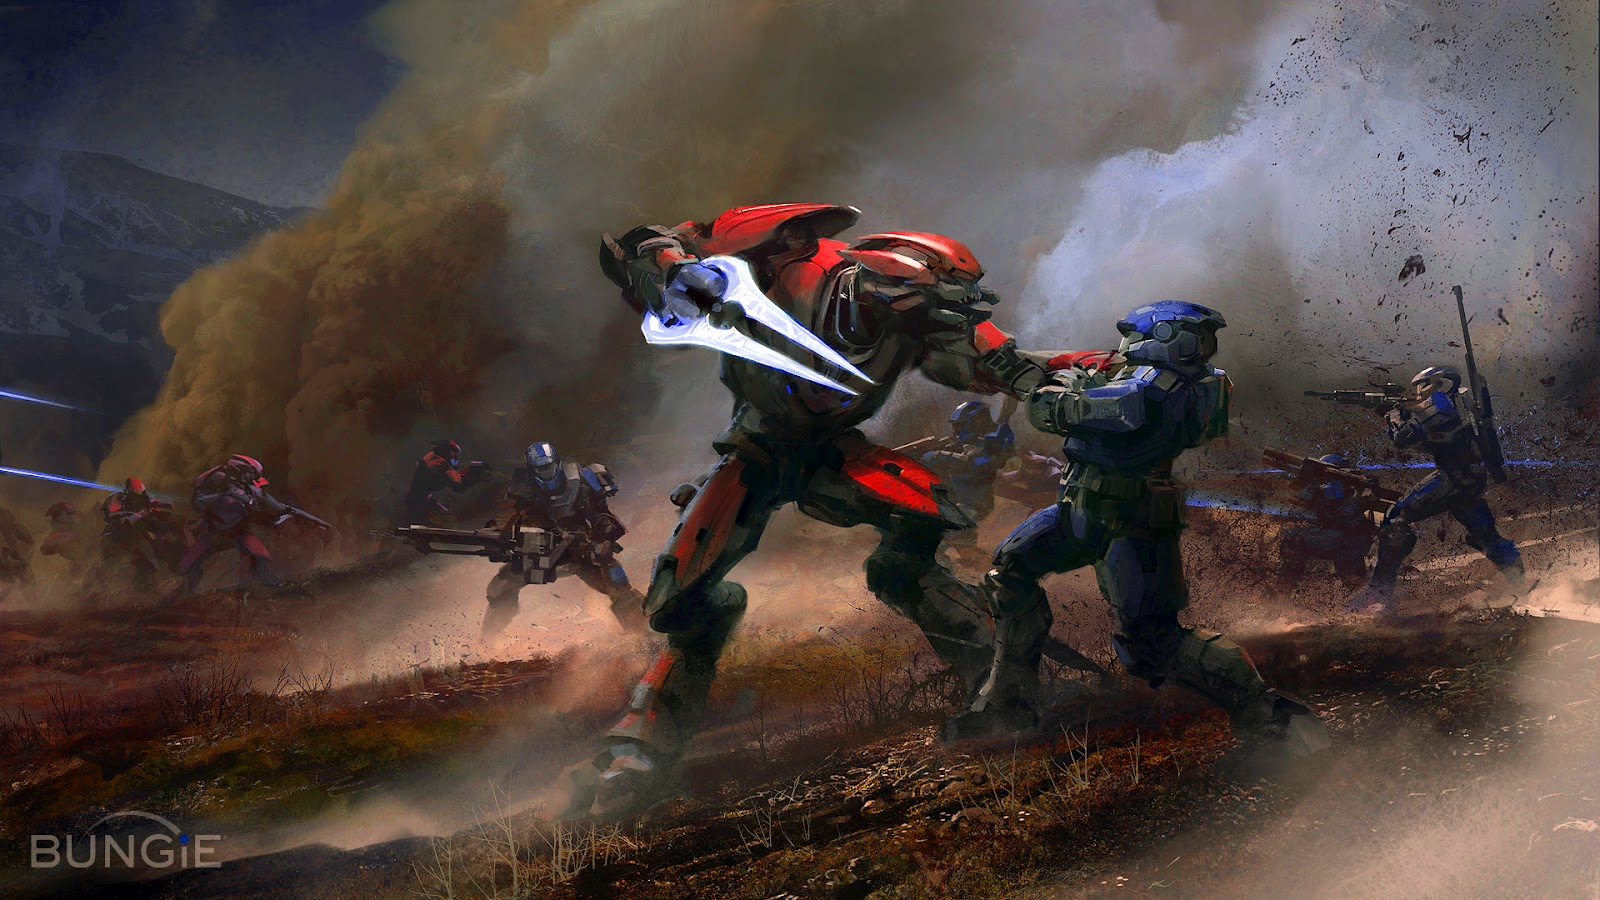 http://4.bp.blogspot.com/-EYmzgfnZ3wo/UA1f8d5DrWI/AAAAAAAAAik/JBKFLErZj1s/s1600/fantasy_paintings_video_games_halo_reach_battles_battle_desktop_1920x1080_hd-wallpaper-569796.jpg